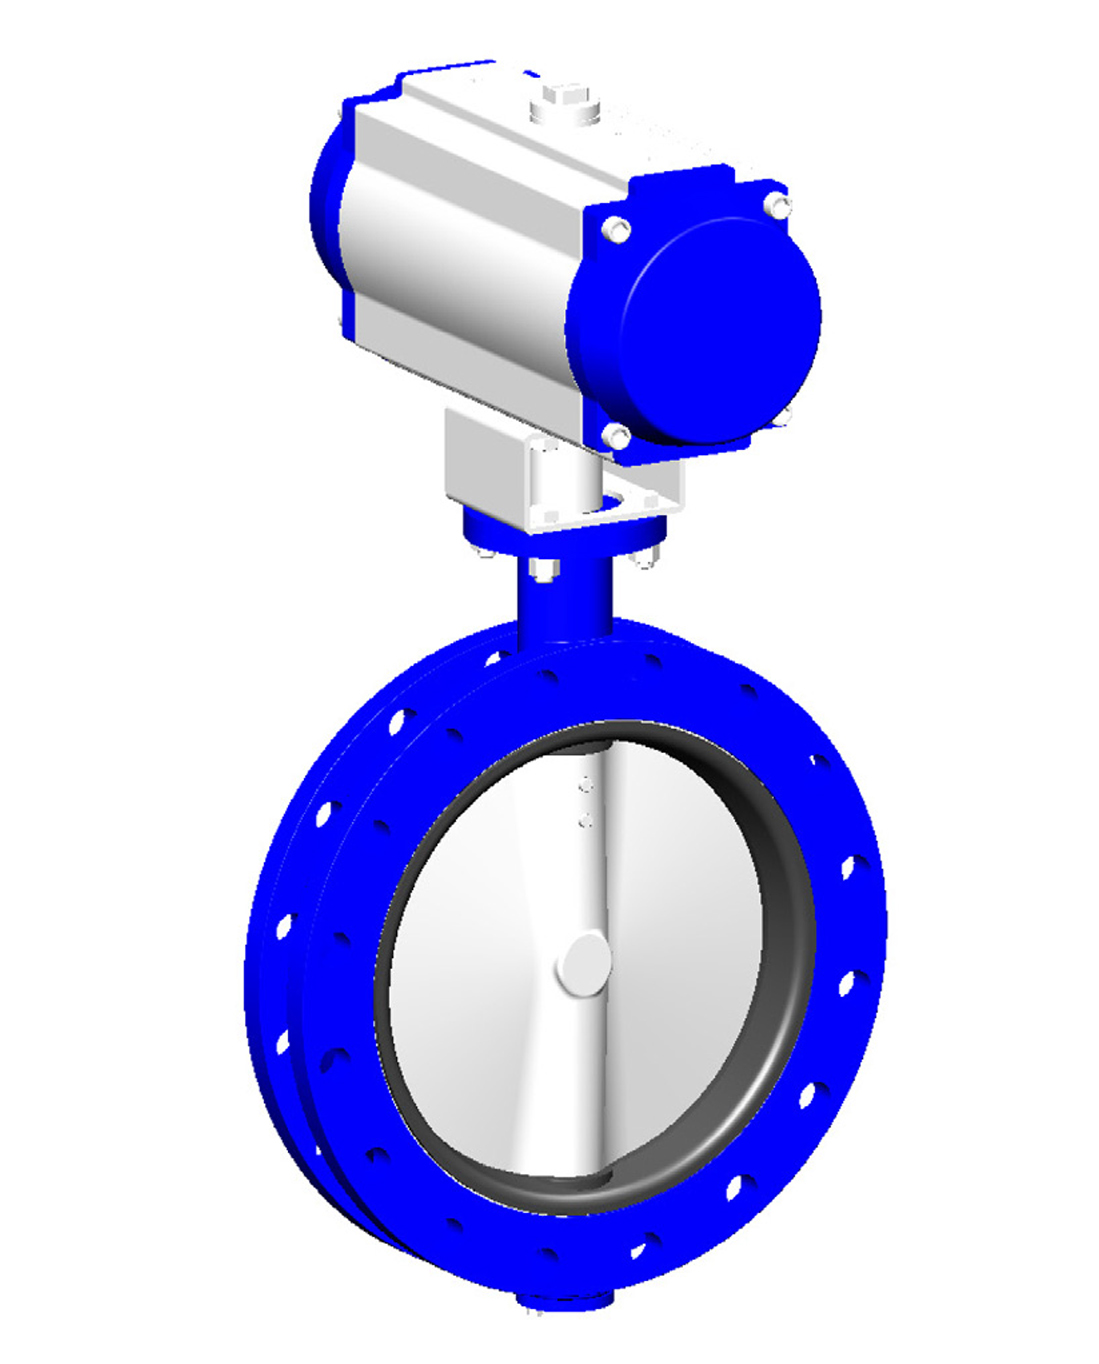 Double flanges type butterfly valve PN10 – ductile iron body – stainless steel disc – single acting pneumatic operator